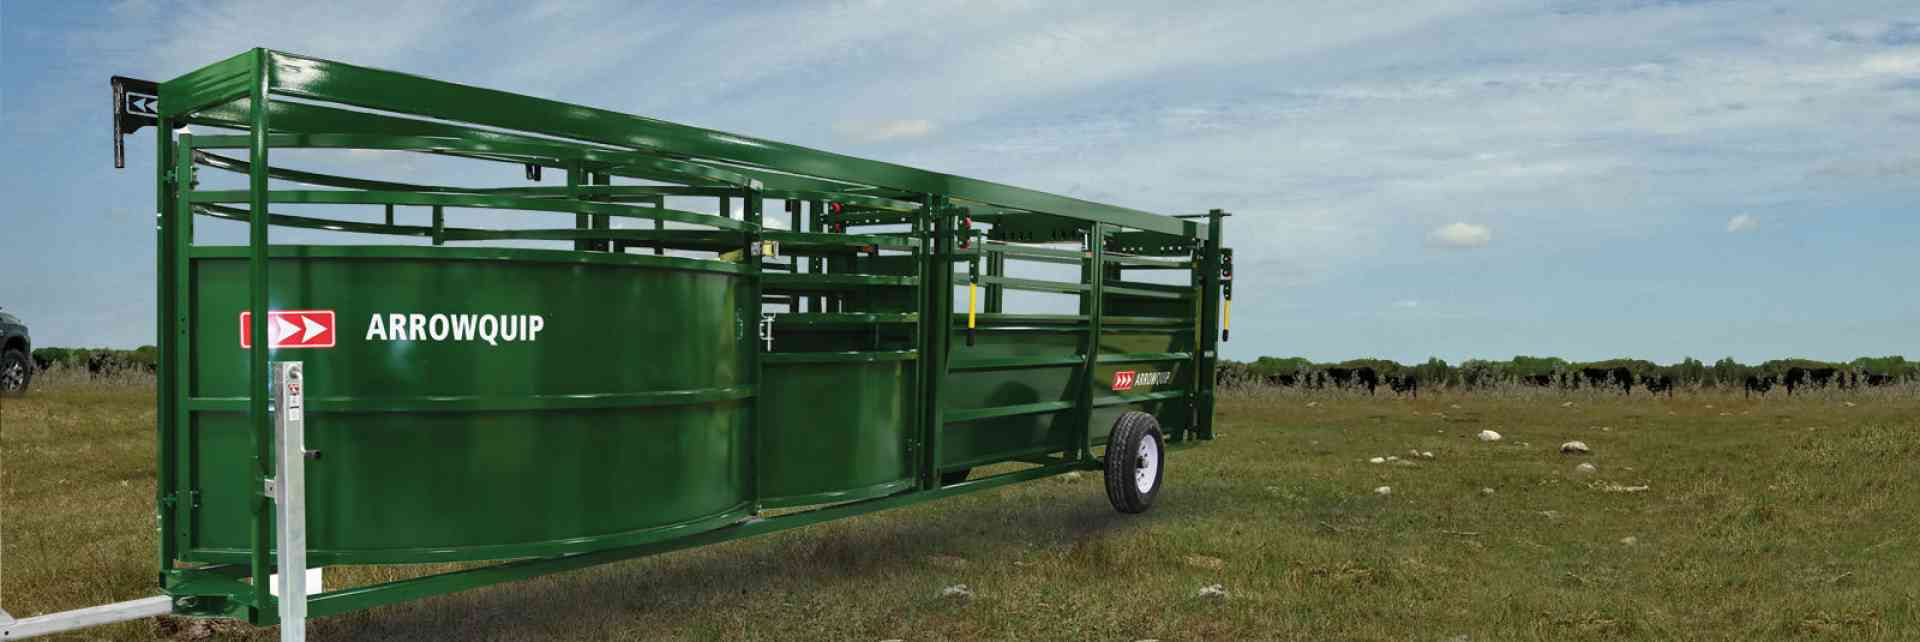 Portable Adjustable Cattle Alley and Cattle Tub | Arrowquip Cattle Equipment